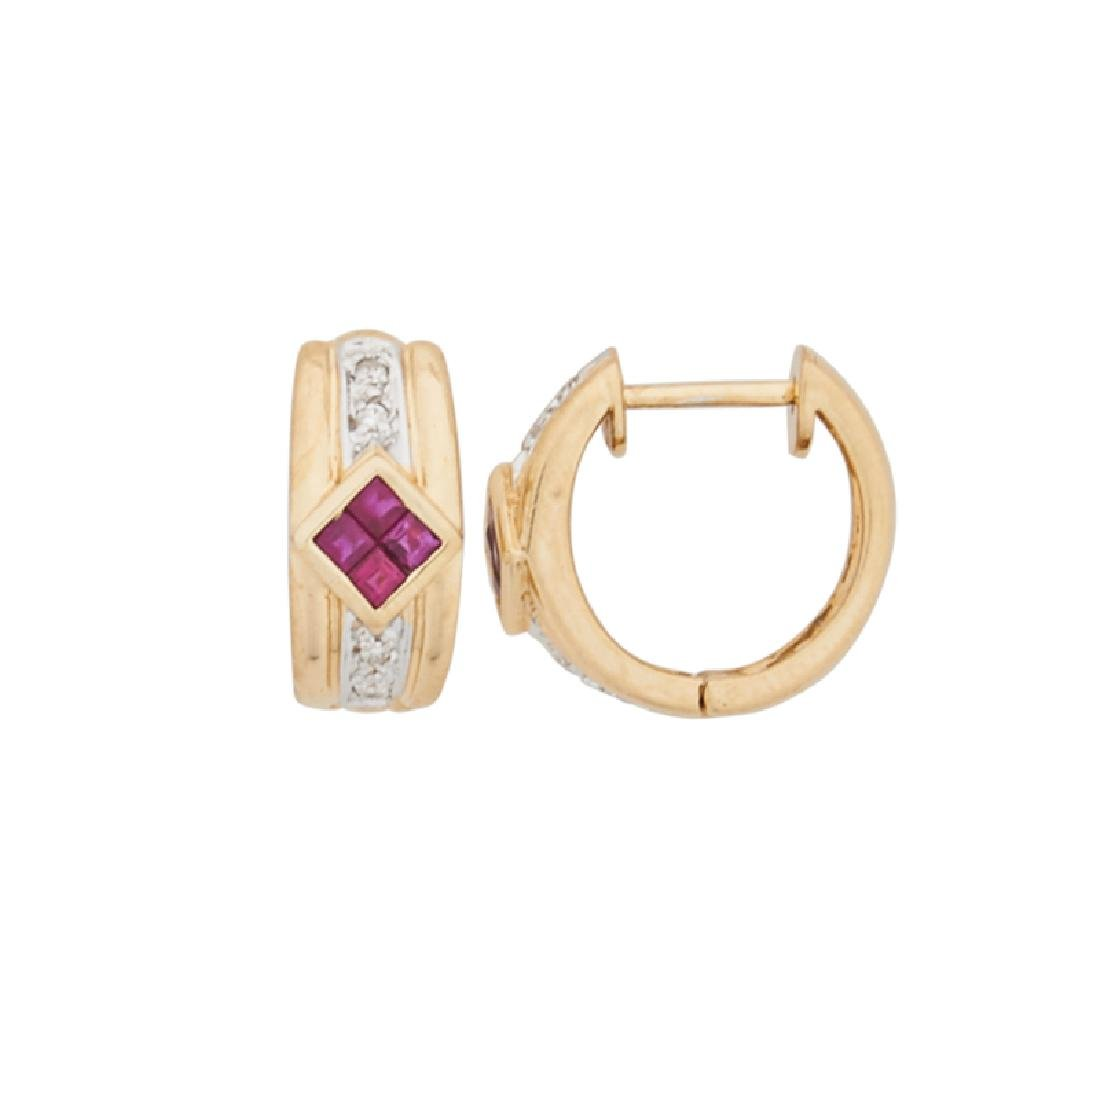 RUBY, DIAMOND & YELLOW GOLD HUGGIE EARRINGS